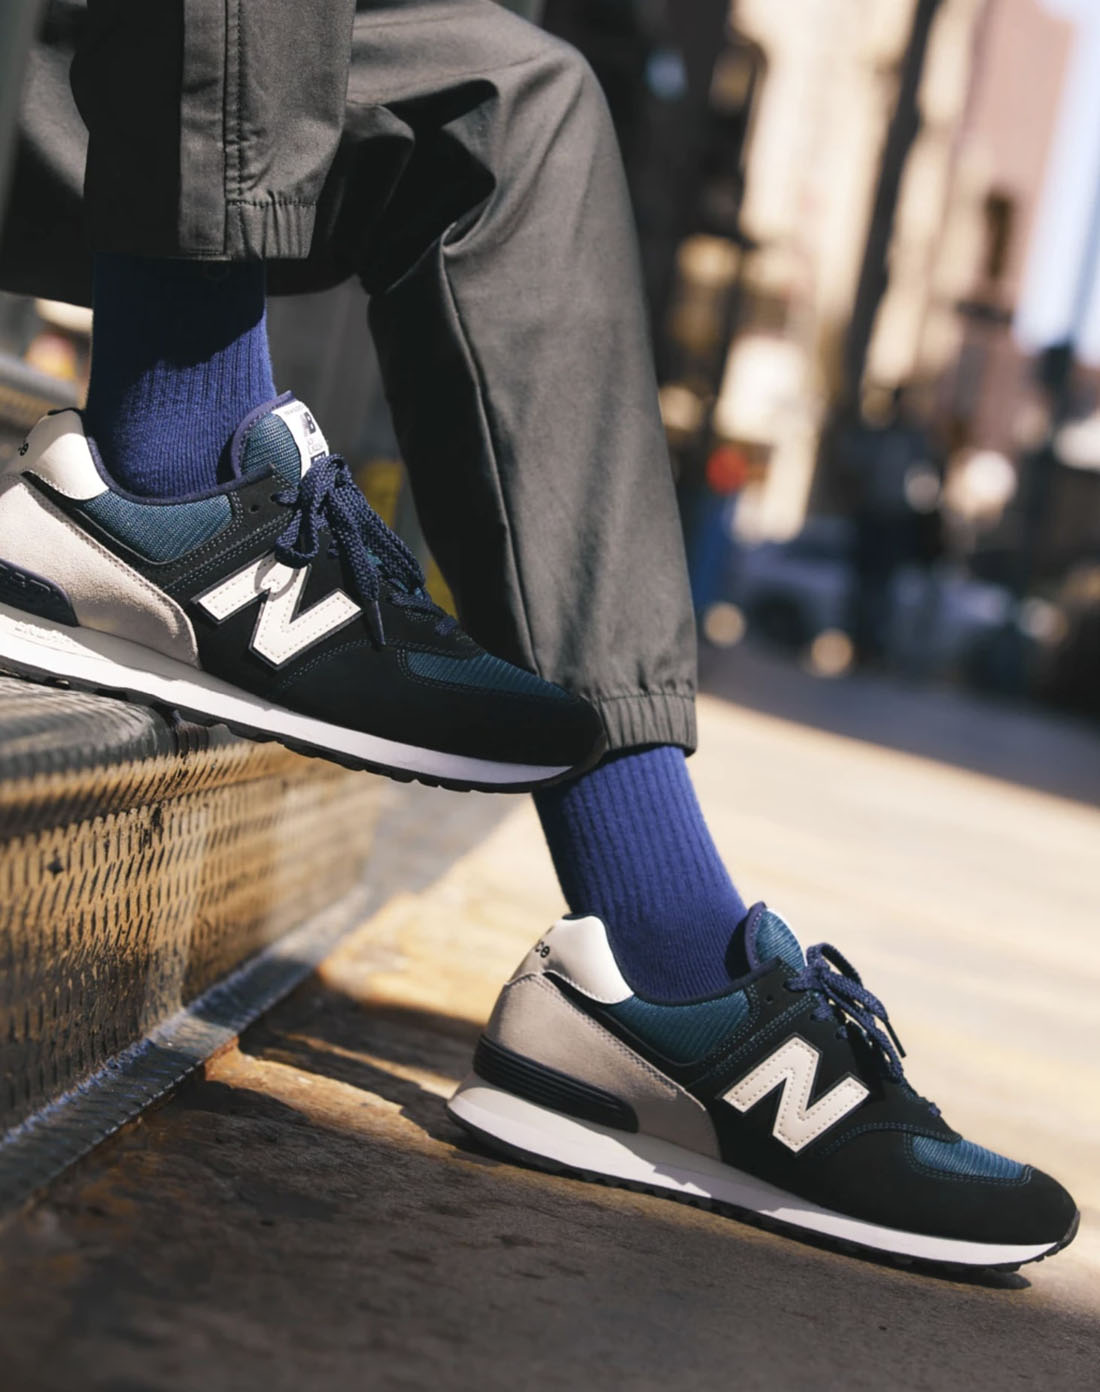 close up image of black and white nike brand shoes and blue socks